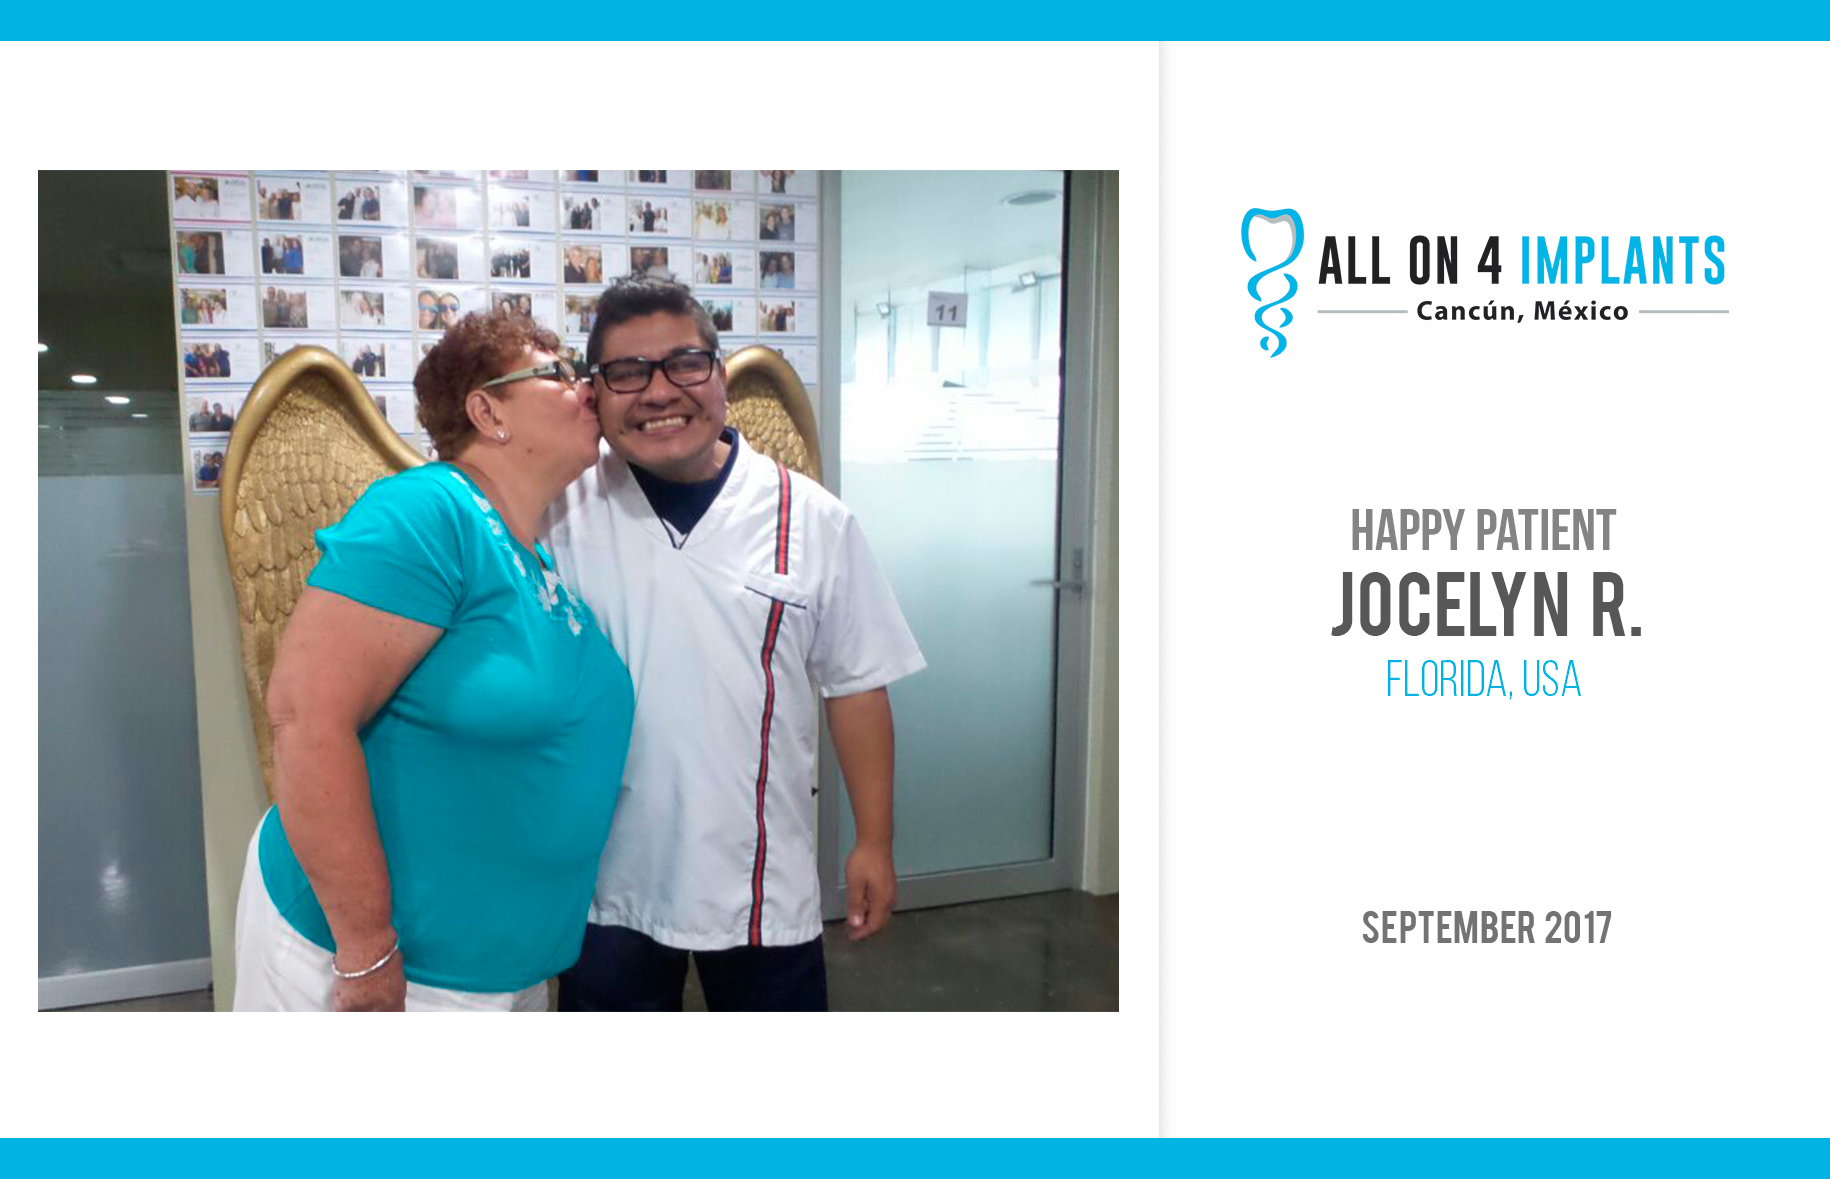 Another All-on-4 Happy Patient!